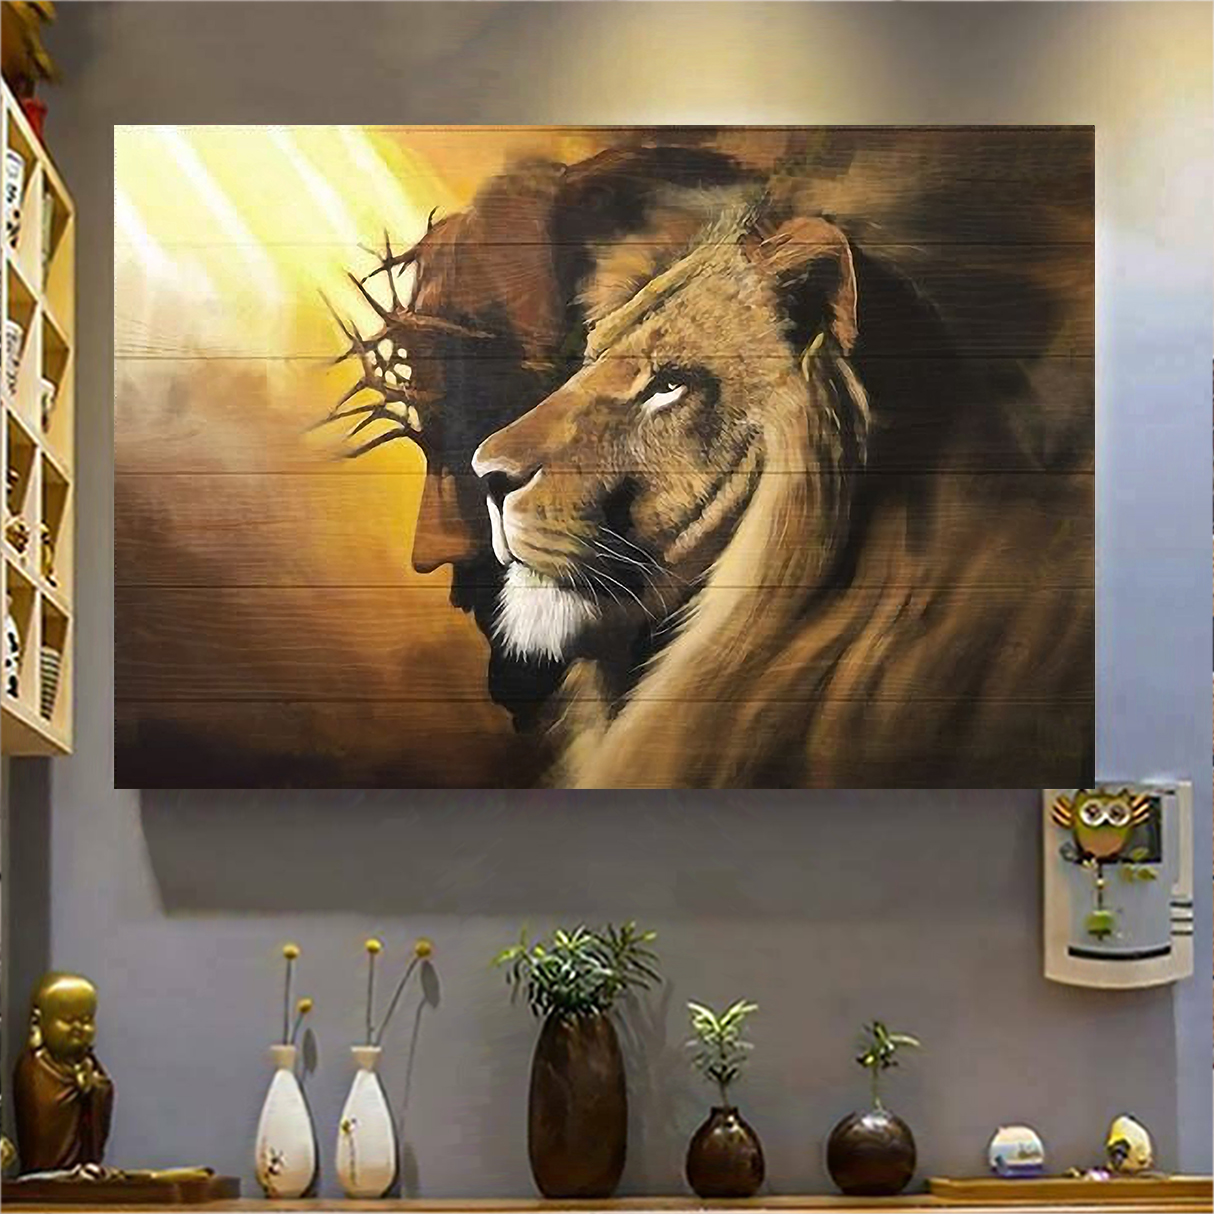 Awesome lion and god canvas large